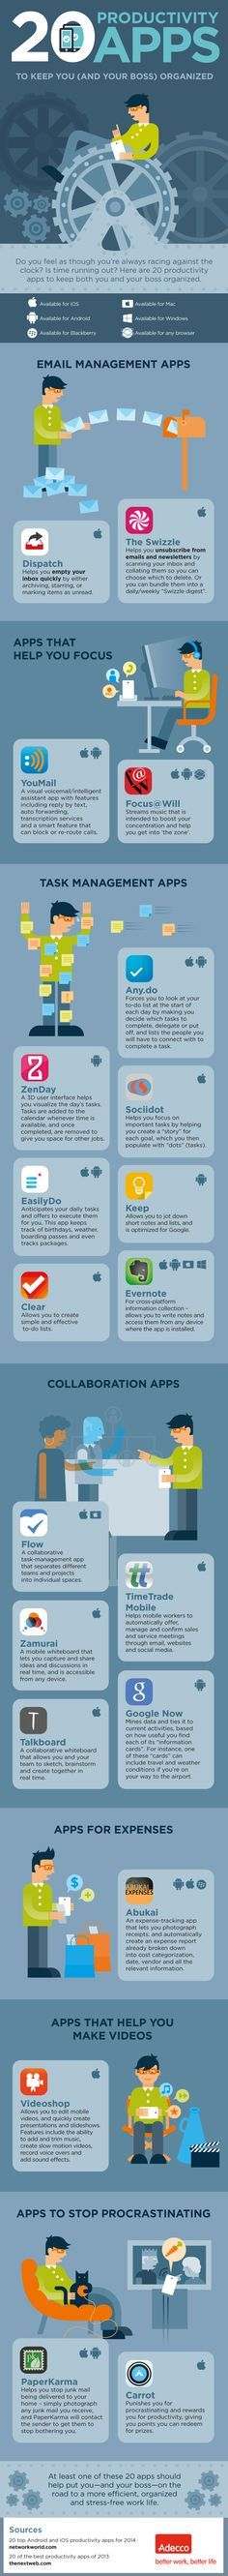 20 iOS and android apps That Turn Your Smartphone Into a Productivity Powerhouse - #Infographic Look at this one http://blogregateapps.com